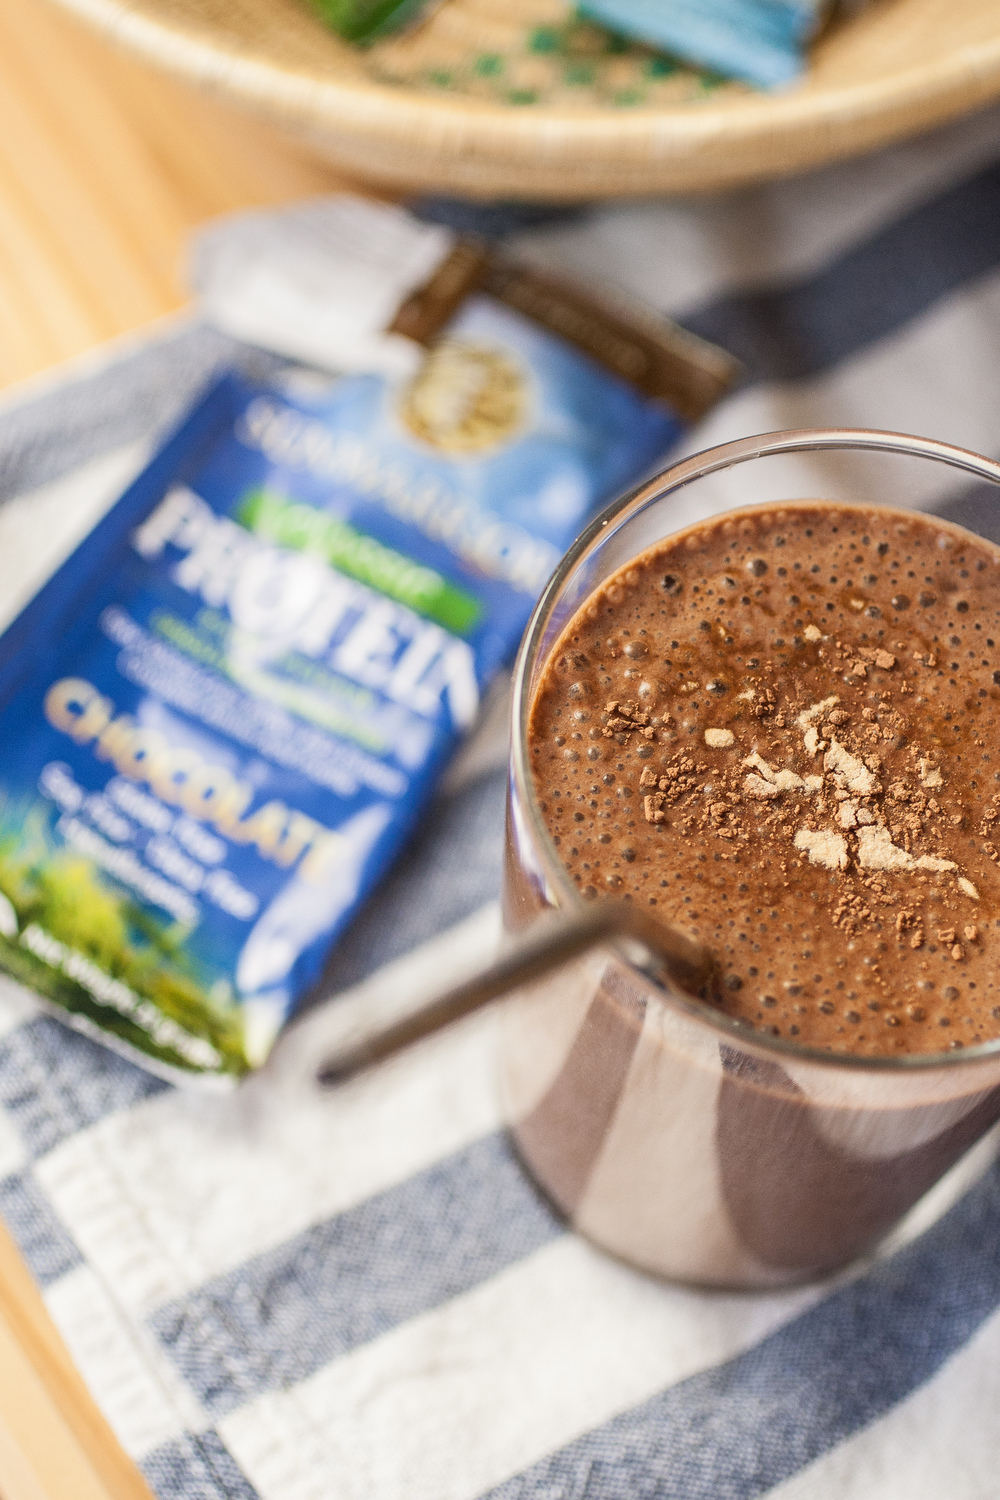 Produce On Parade - Malted Chocolate Shake - Growing up, my grandmother used to make me malted chocolate shakes. Alas, the instant chocolate malt powder isn't cruelty-free, so I decided to make my own! This is a protein packed shake thanks to a little help from Sunwarrior.